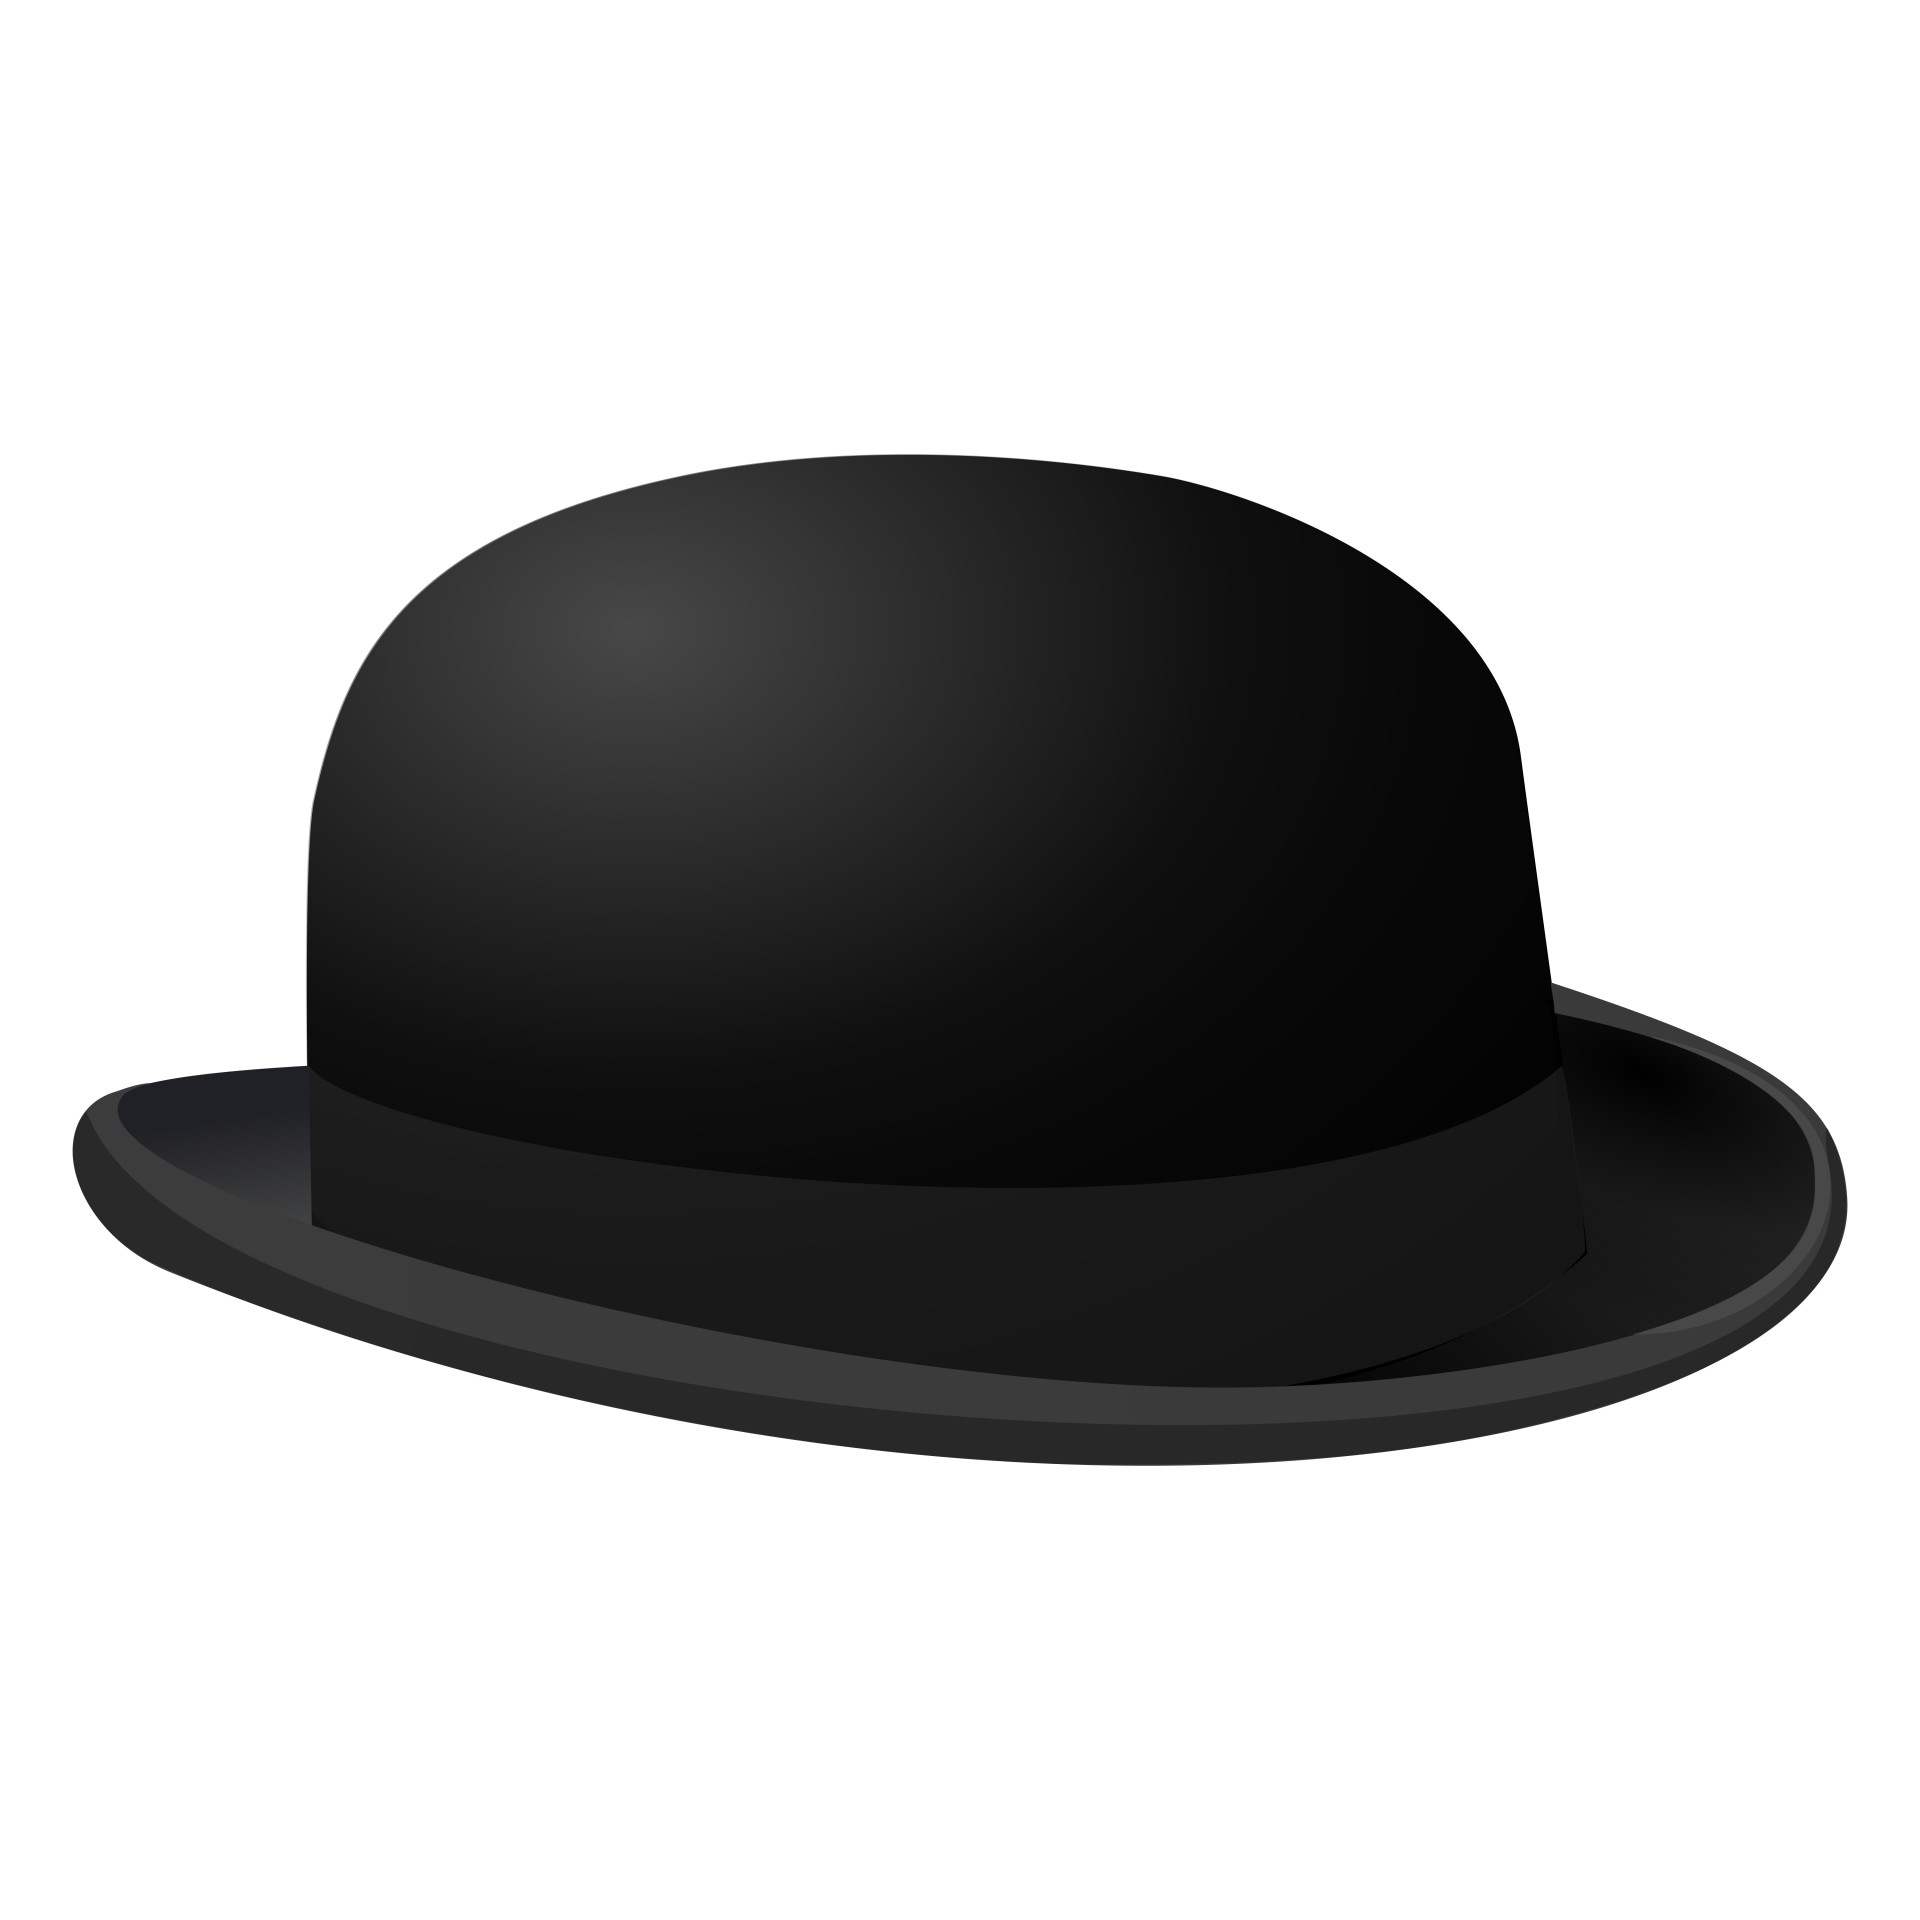 Bowler hat free clipart royalty free library Free Bowler Hat Silhouette, Download Free Clip Art, Free Clip Art on ... royalty free library